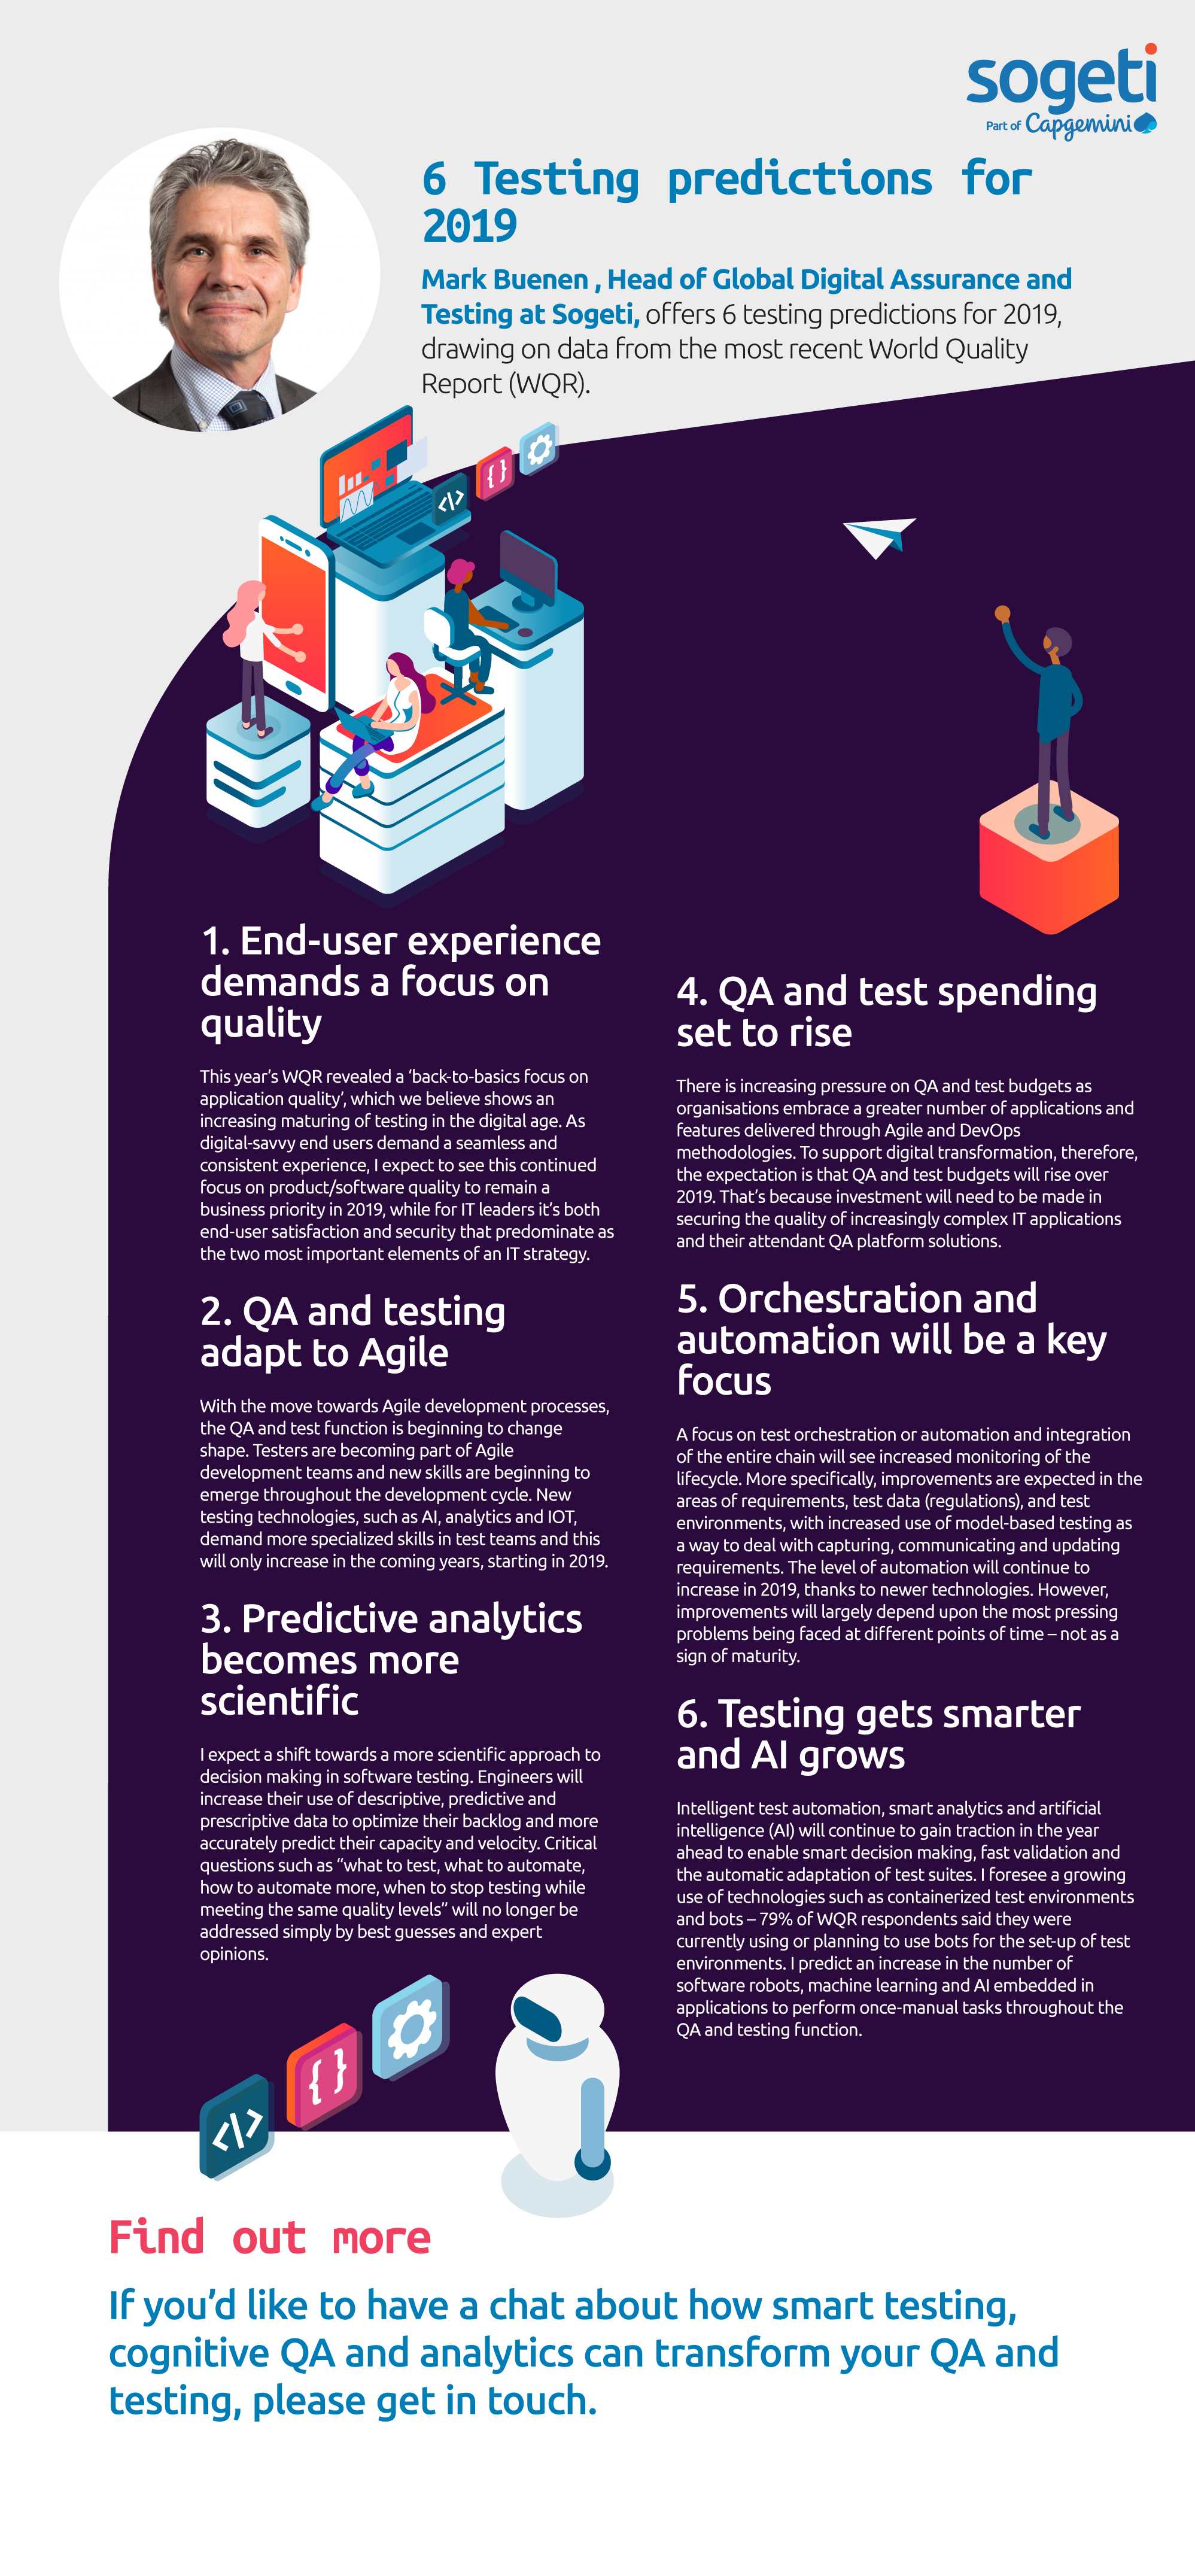 6 Testing predictions for 2019